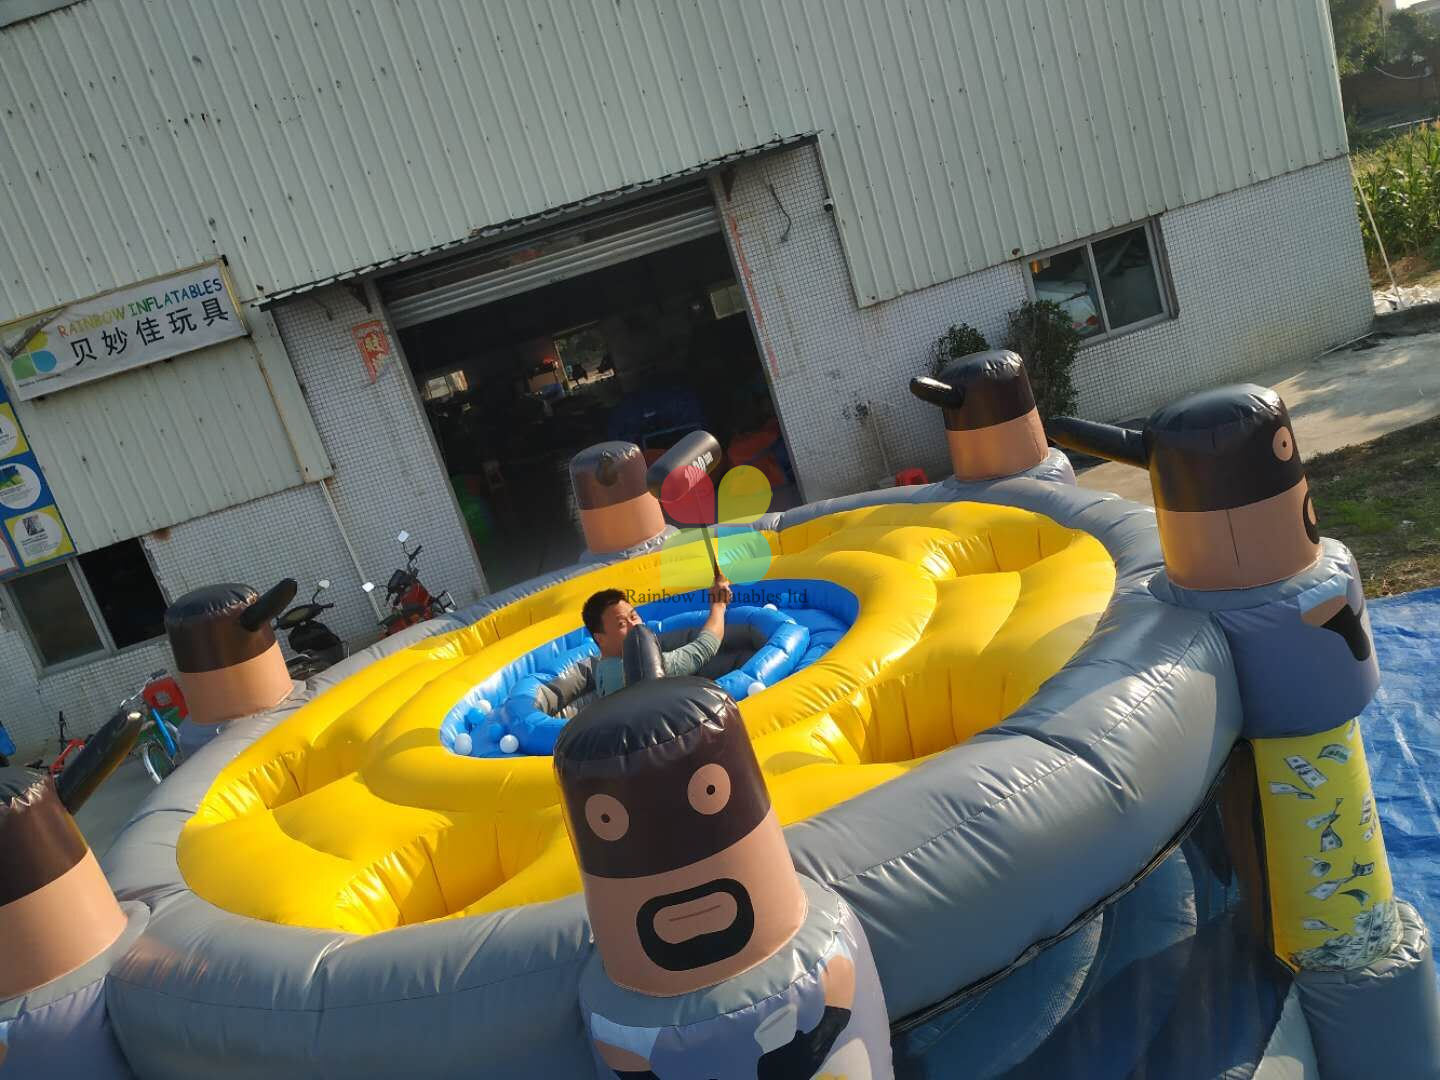 Inflatable Whack A Mole for Adults Outdoor Inflatable Games